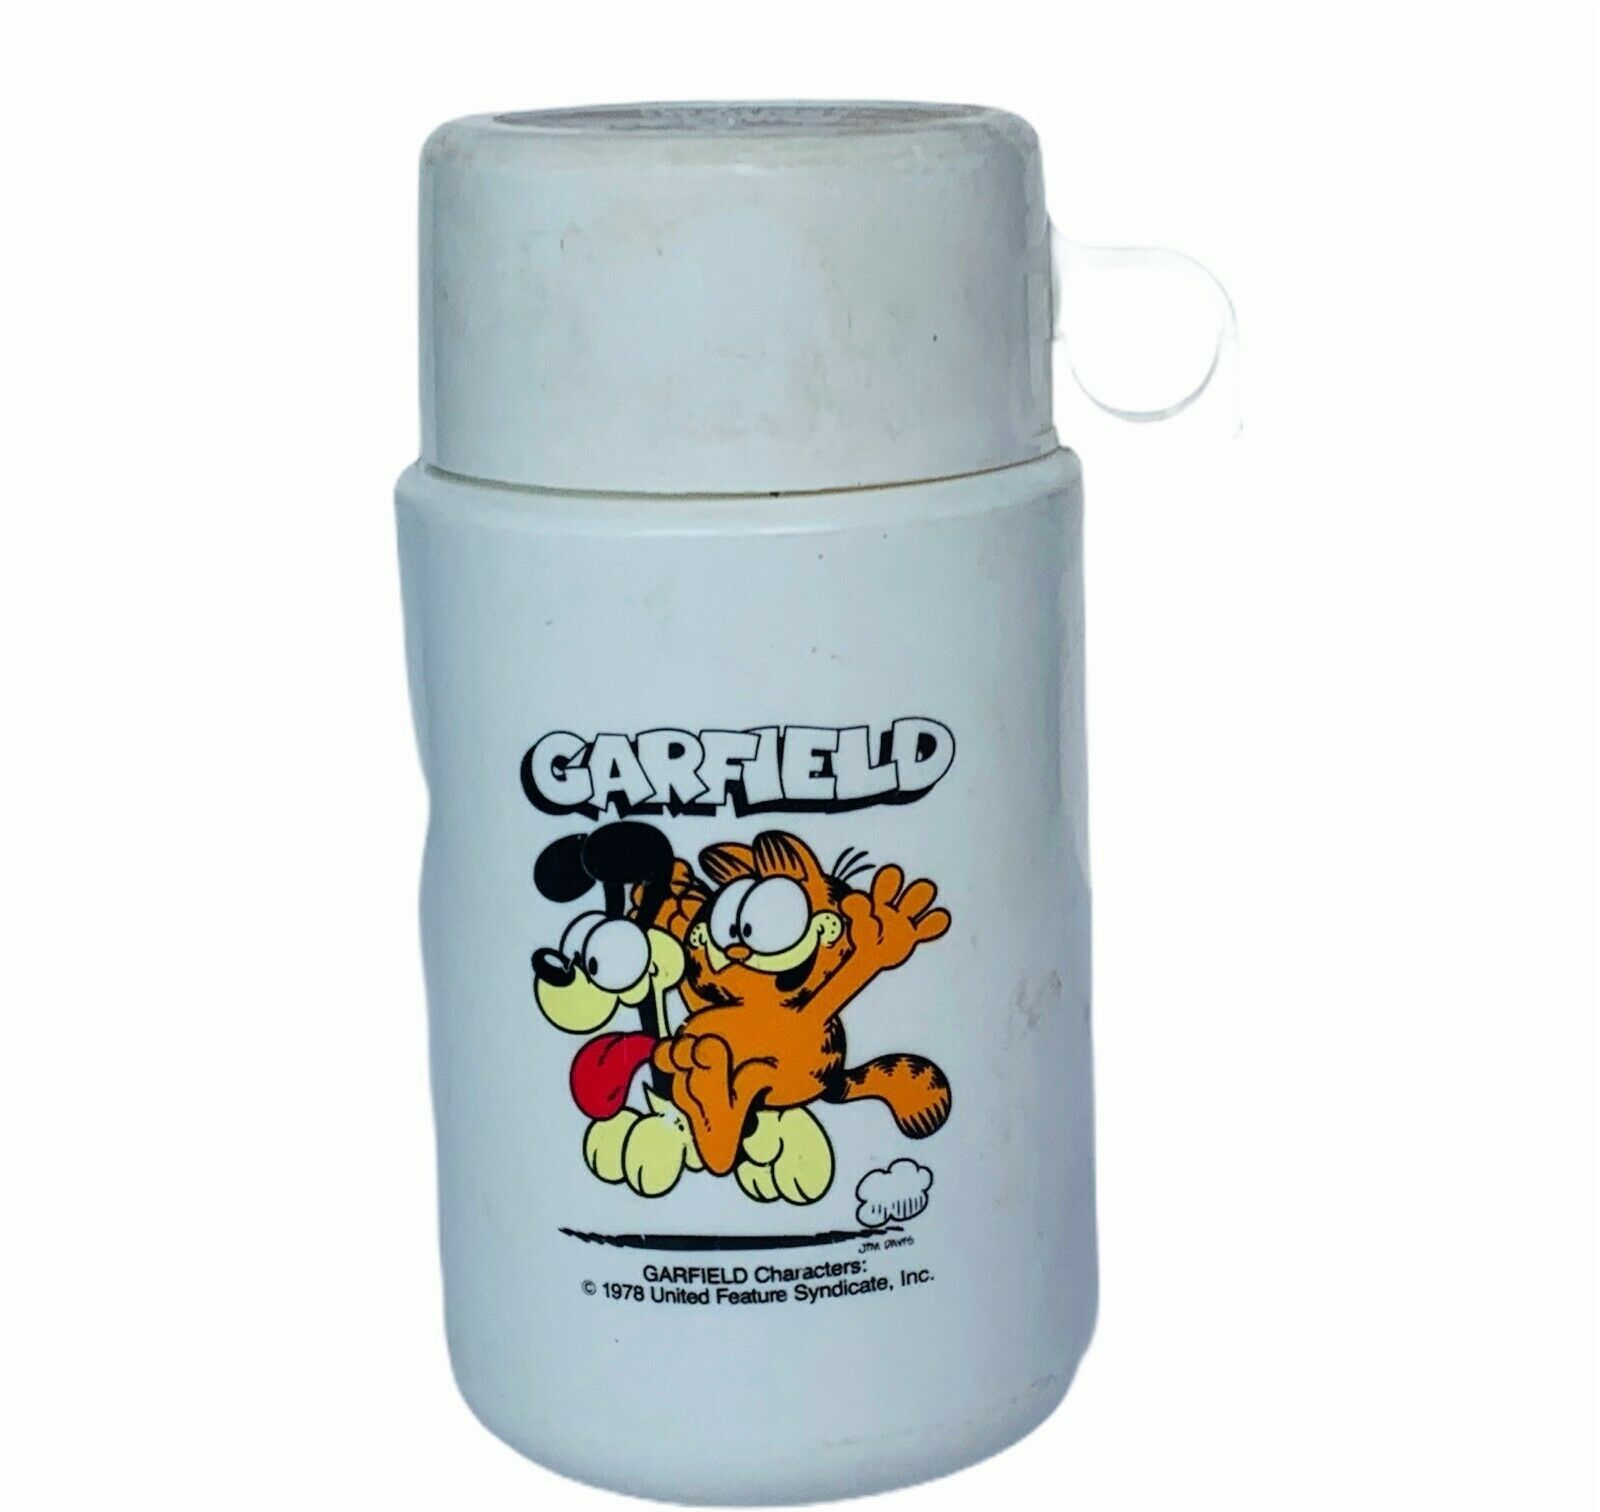 Thermos vtg lunchbox plastic Aladdin accessory Garfield Odie 1978 united feature - $28.98